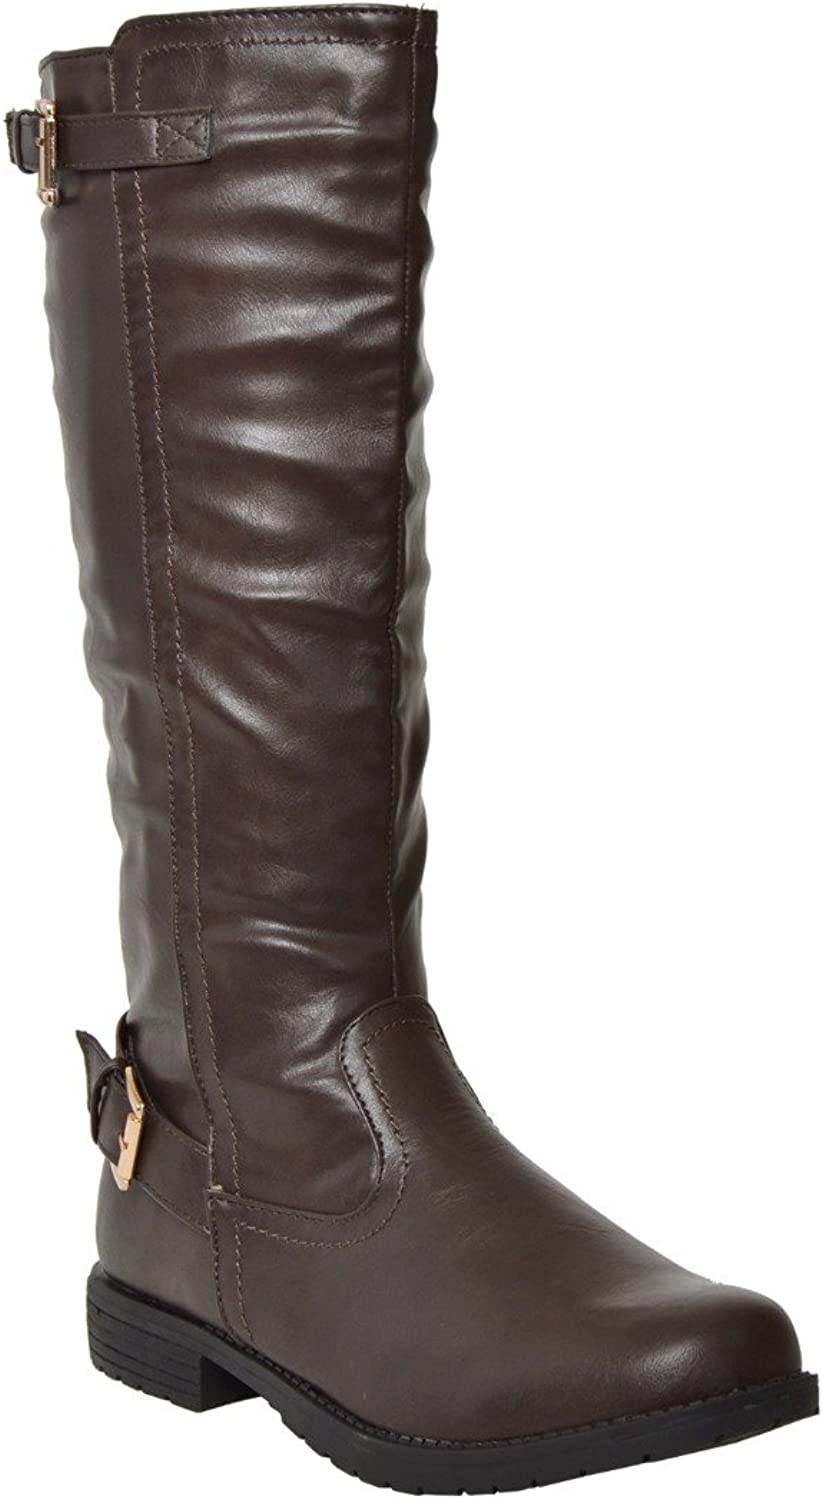 TM By KSC Womens Knee High Boots Casual Riding Western Double Adjustable gold Buckles DKBROWN